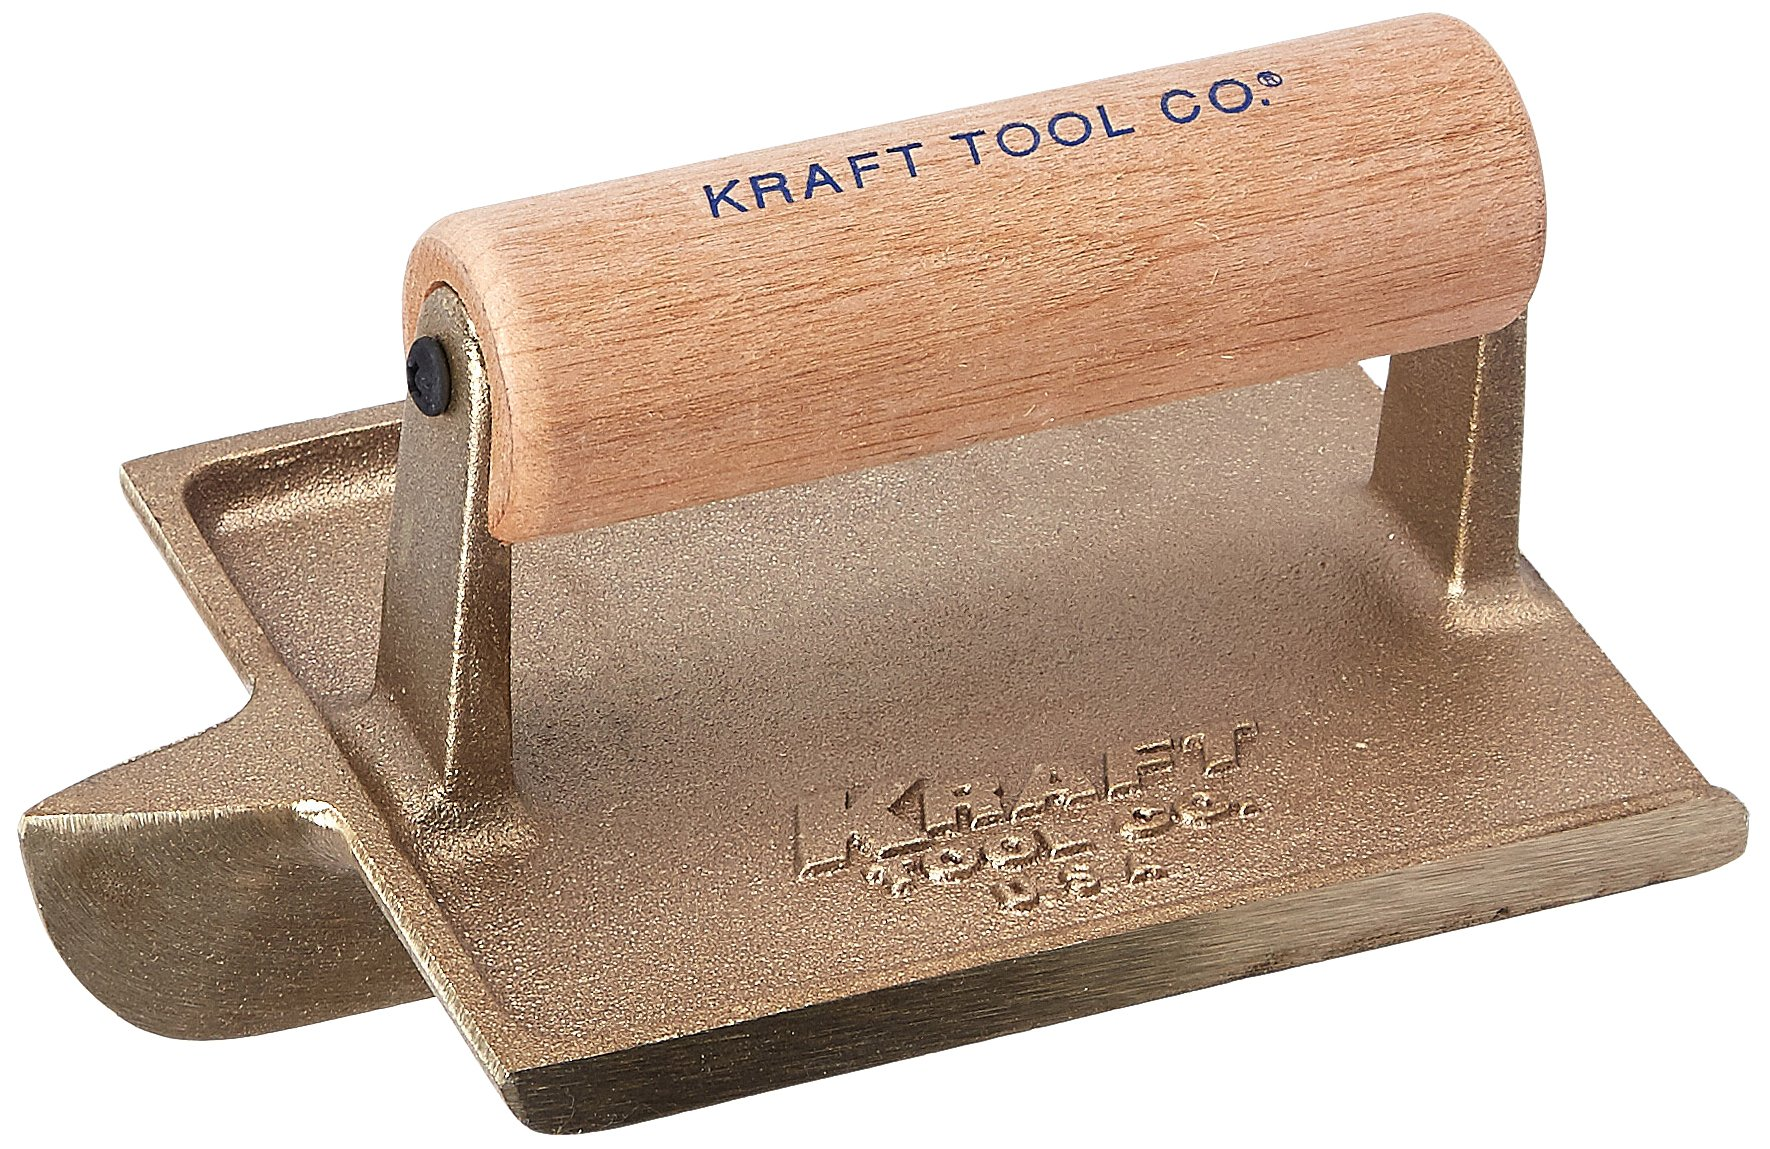 Kraft Tool CF314 Deep Bit Bronze Groover with Wood Handle, 6 x 4-1/2-Inch by Kraft Tool